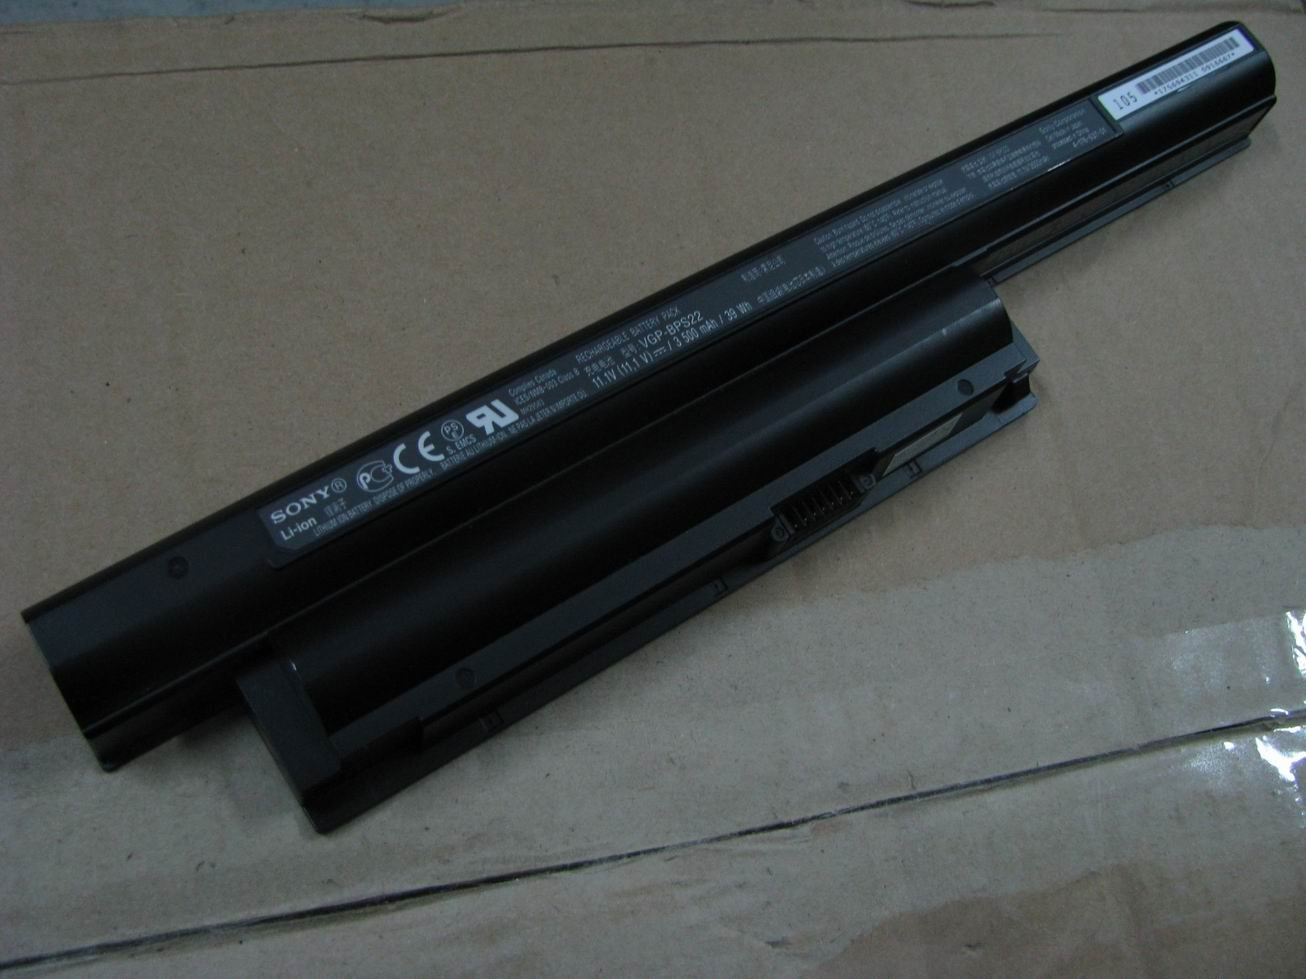 Sony Vaio VGP-BPS22 Battery For Sony Laptops For Sale